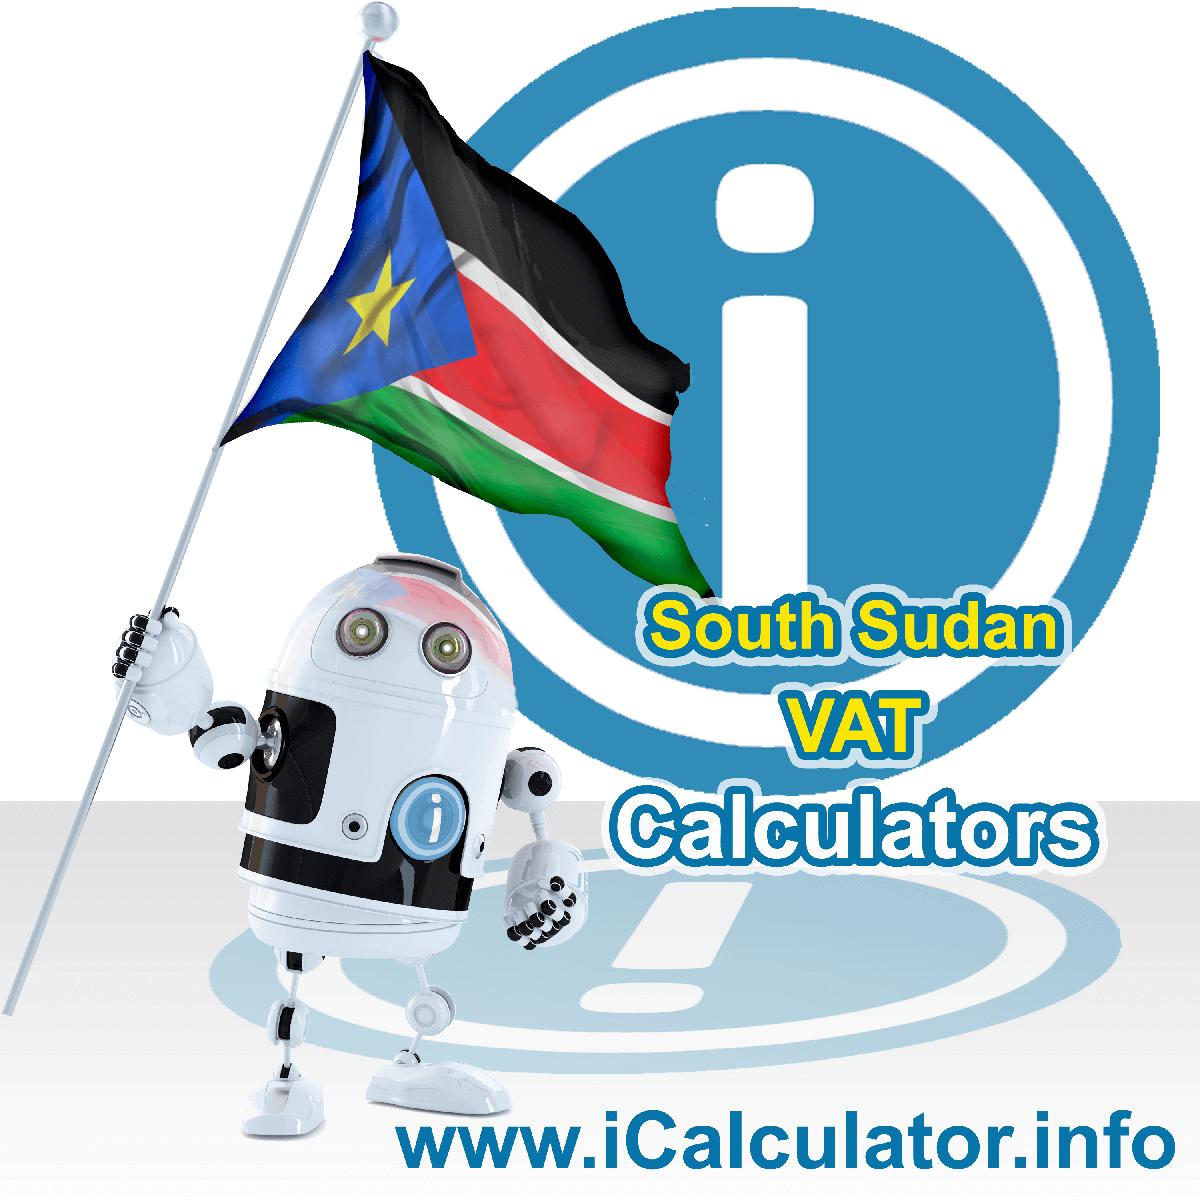 South Sudan VAT Calculator. This image shows the South Sudan flag and information relating to the VAT formula used for calculating Value Added Tax in South Sudan using the South Sudan VAT Calculator in 2020